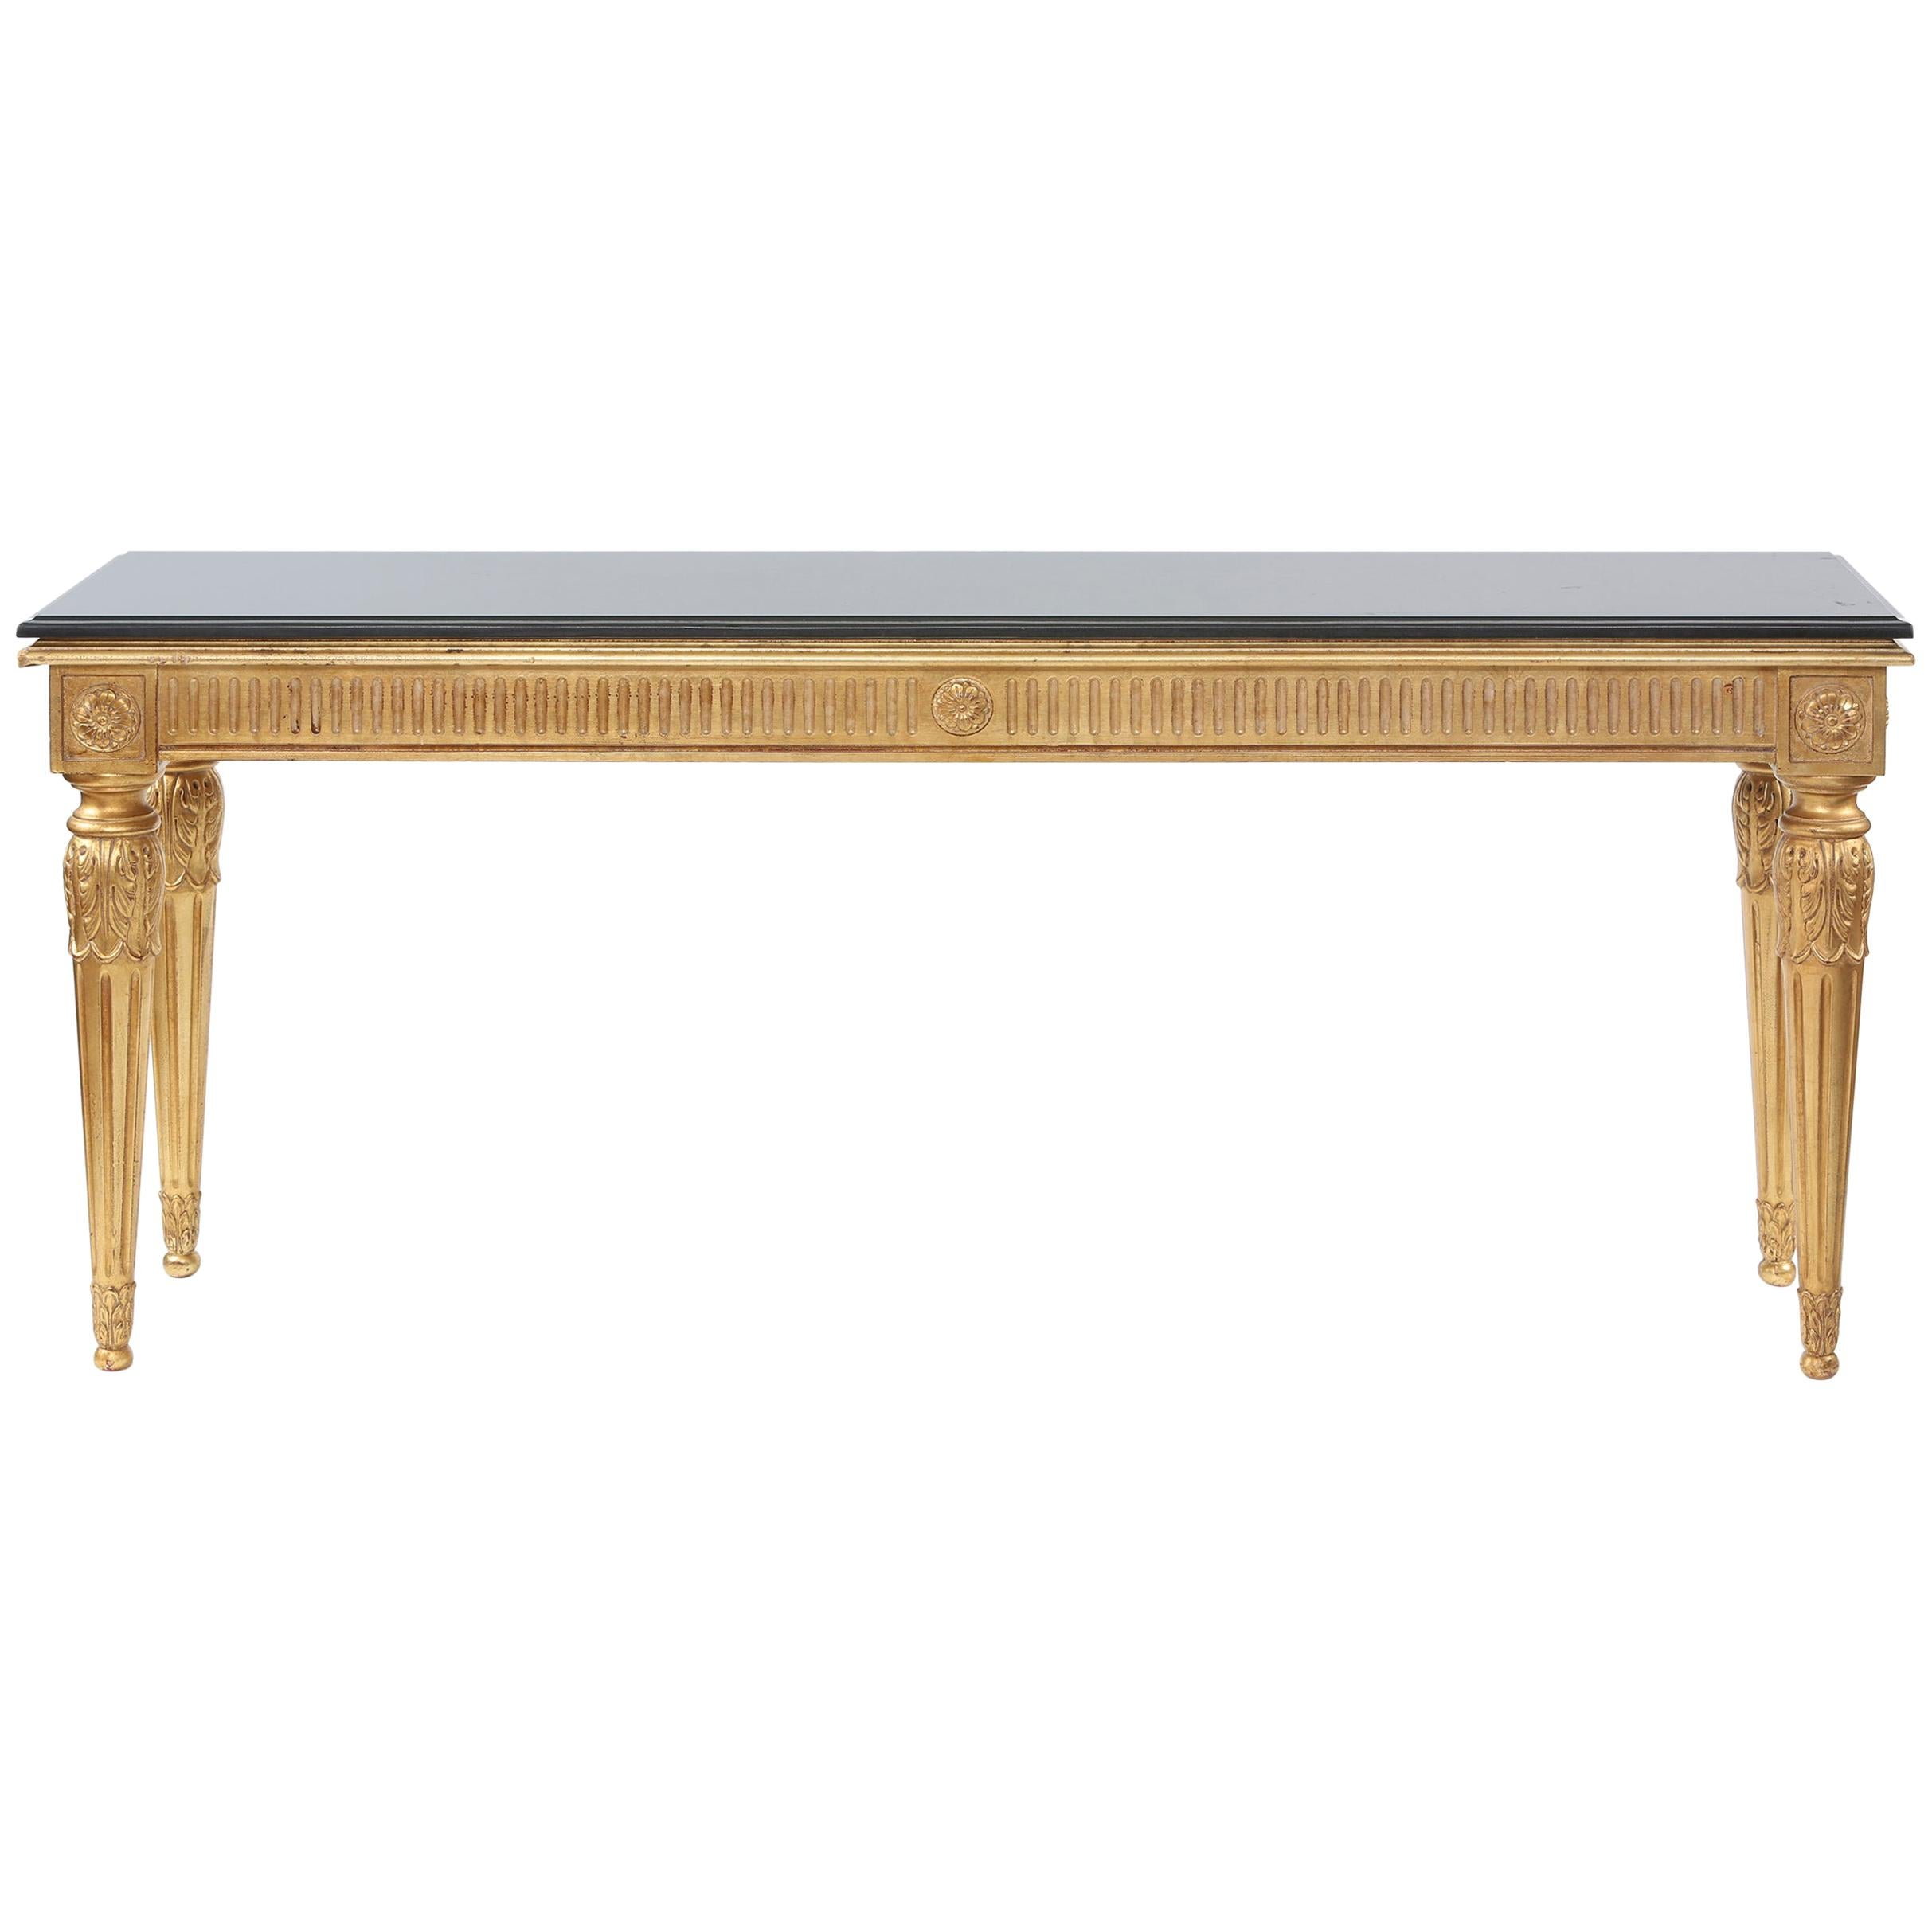 Early 20th Century Giltwood / Marble-Top Console Table